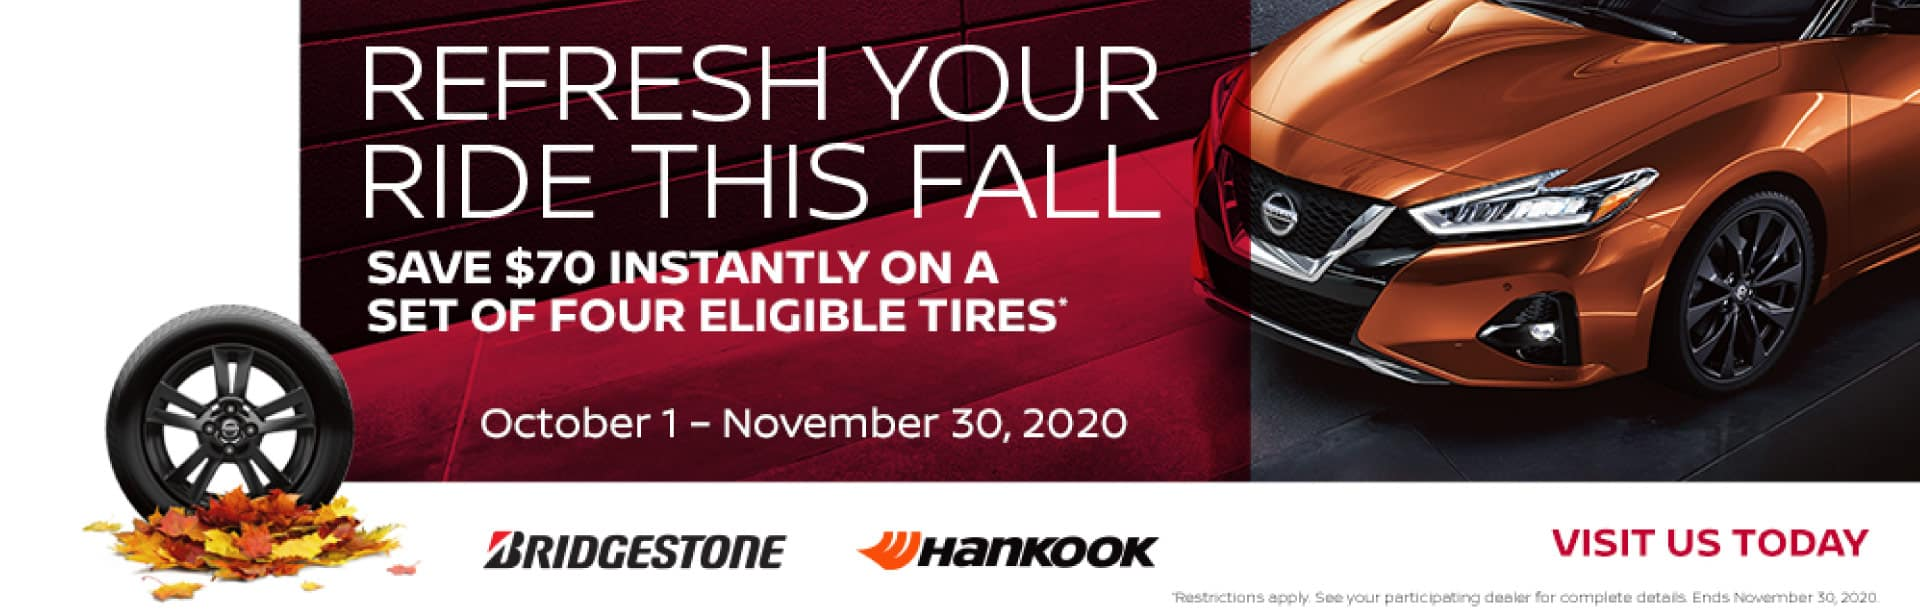 Refresh your ride this fall | Save $70 instantly on a set of four eligible tires